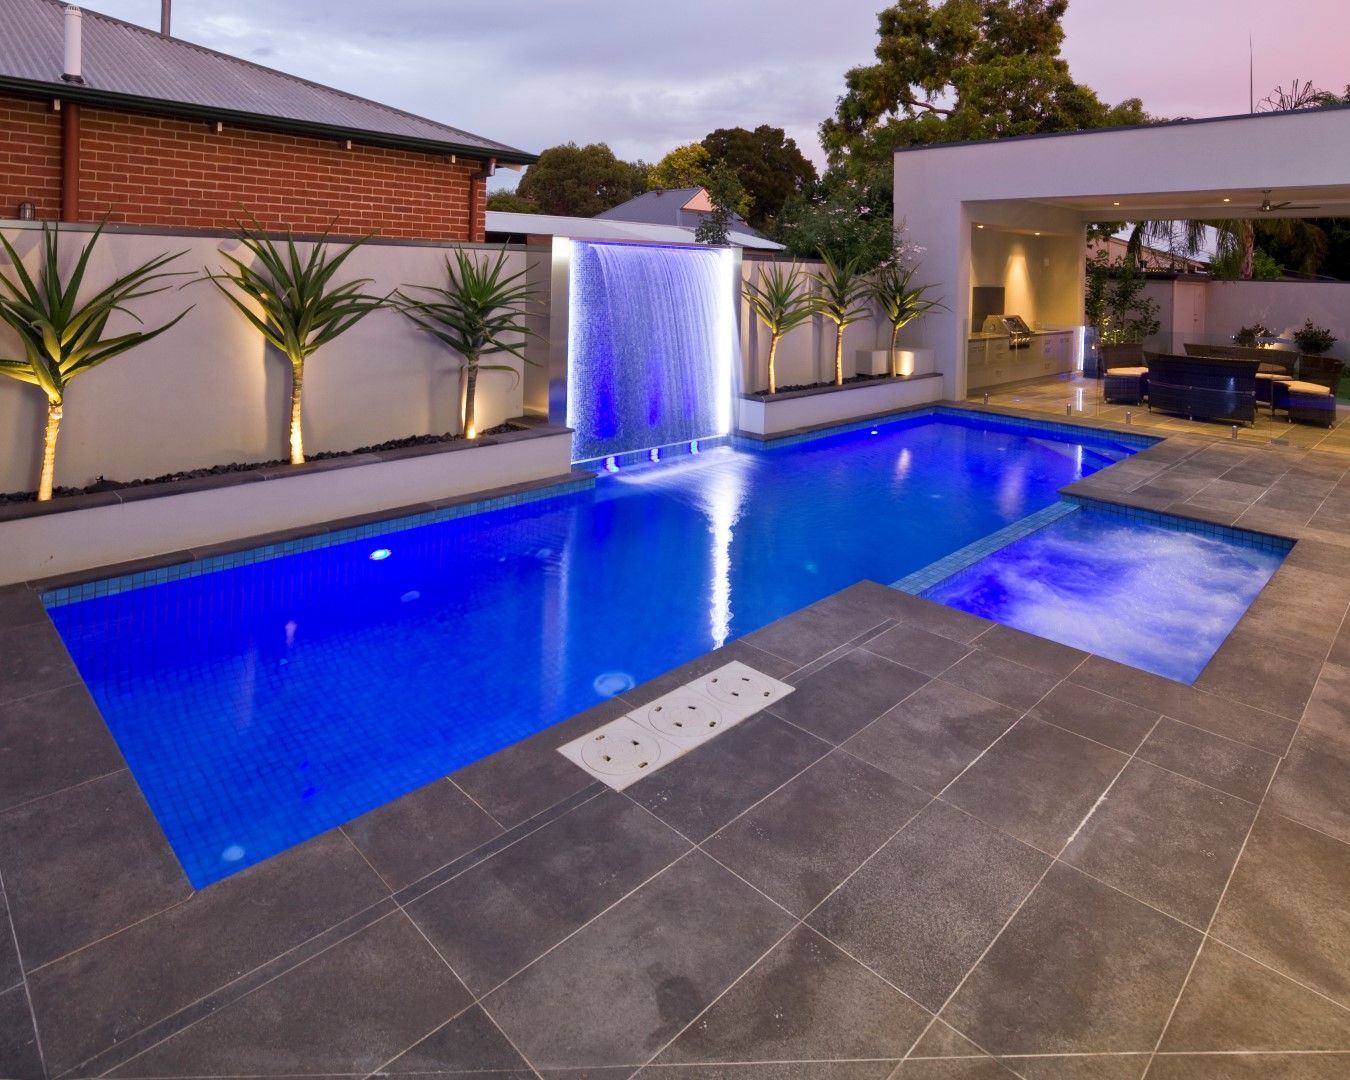 Concretepool swimmingpool freedompools resort pools for Best pool design 2015